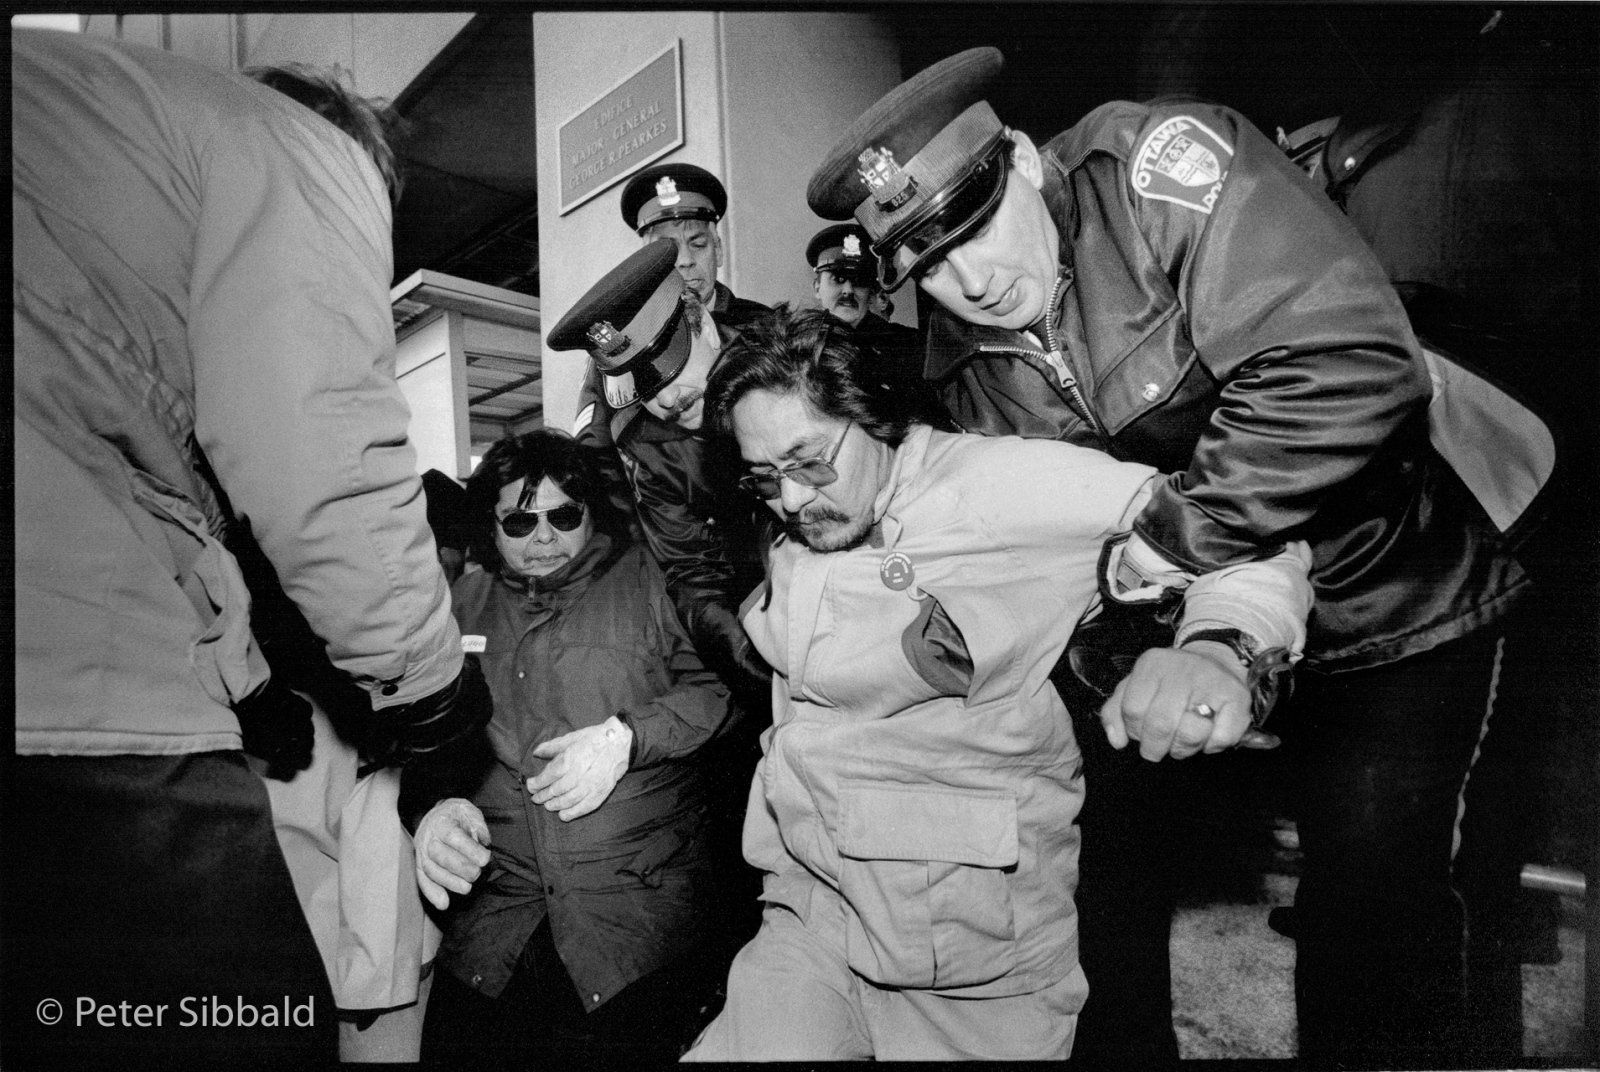 Ottawa, Canada. The Nation's Capital Innu spokesman Penote (Ben) Michel is arrested for blocking employee access to the Department of National Defence Headquarters during a Remembrance Day civil disobedience action protesting low-level flight training over Nitassinan. Copyright Peter Sibbald, 1990